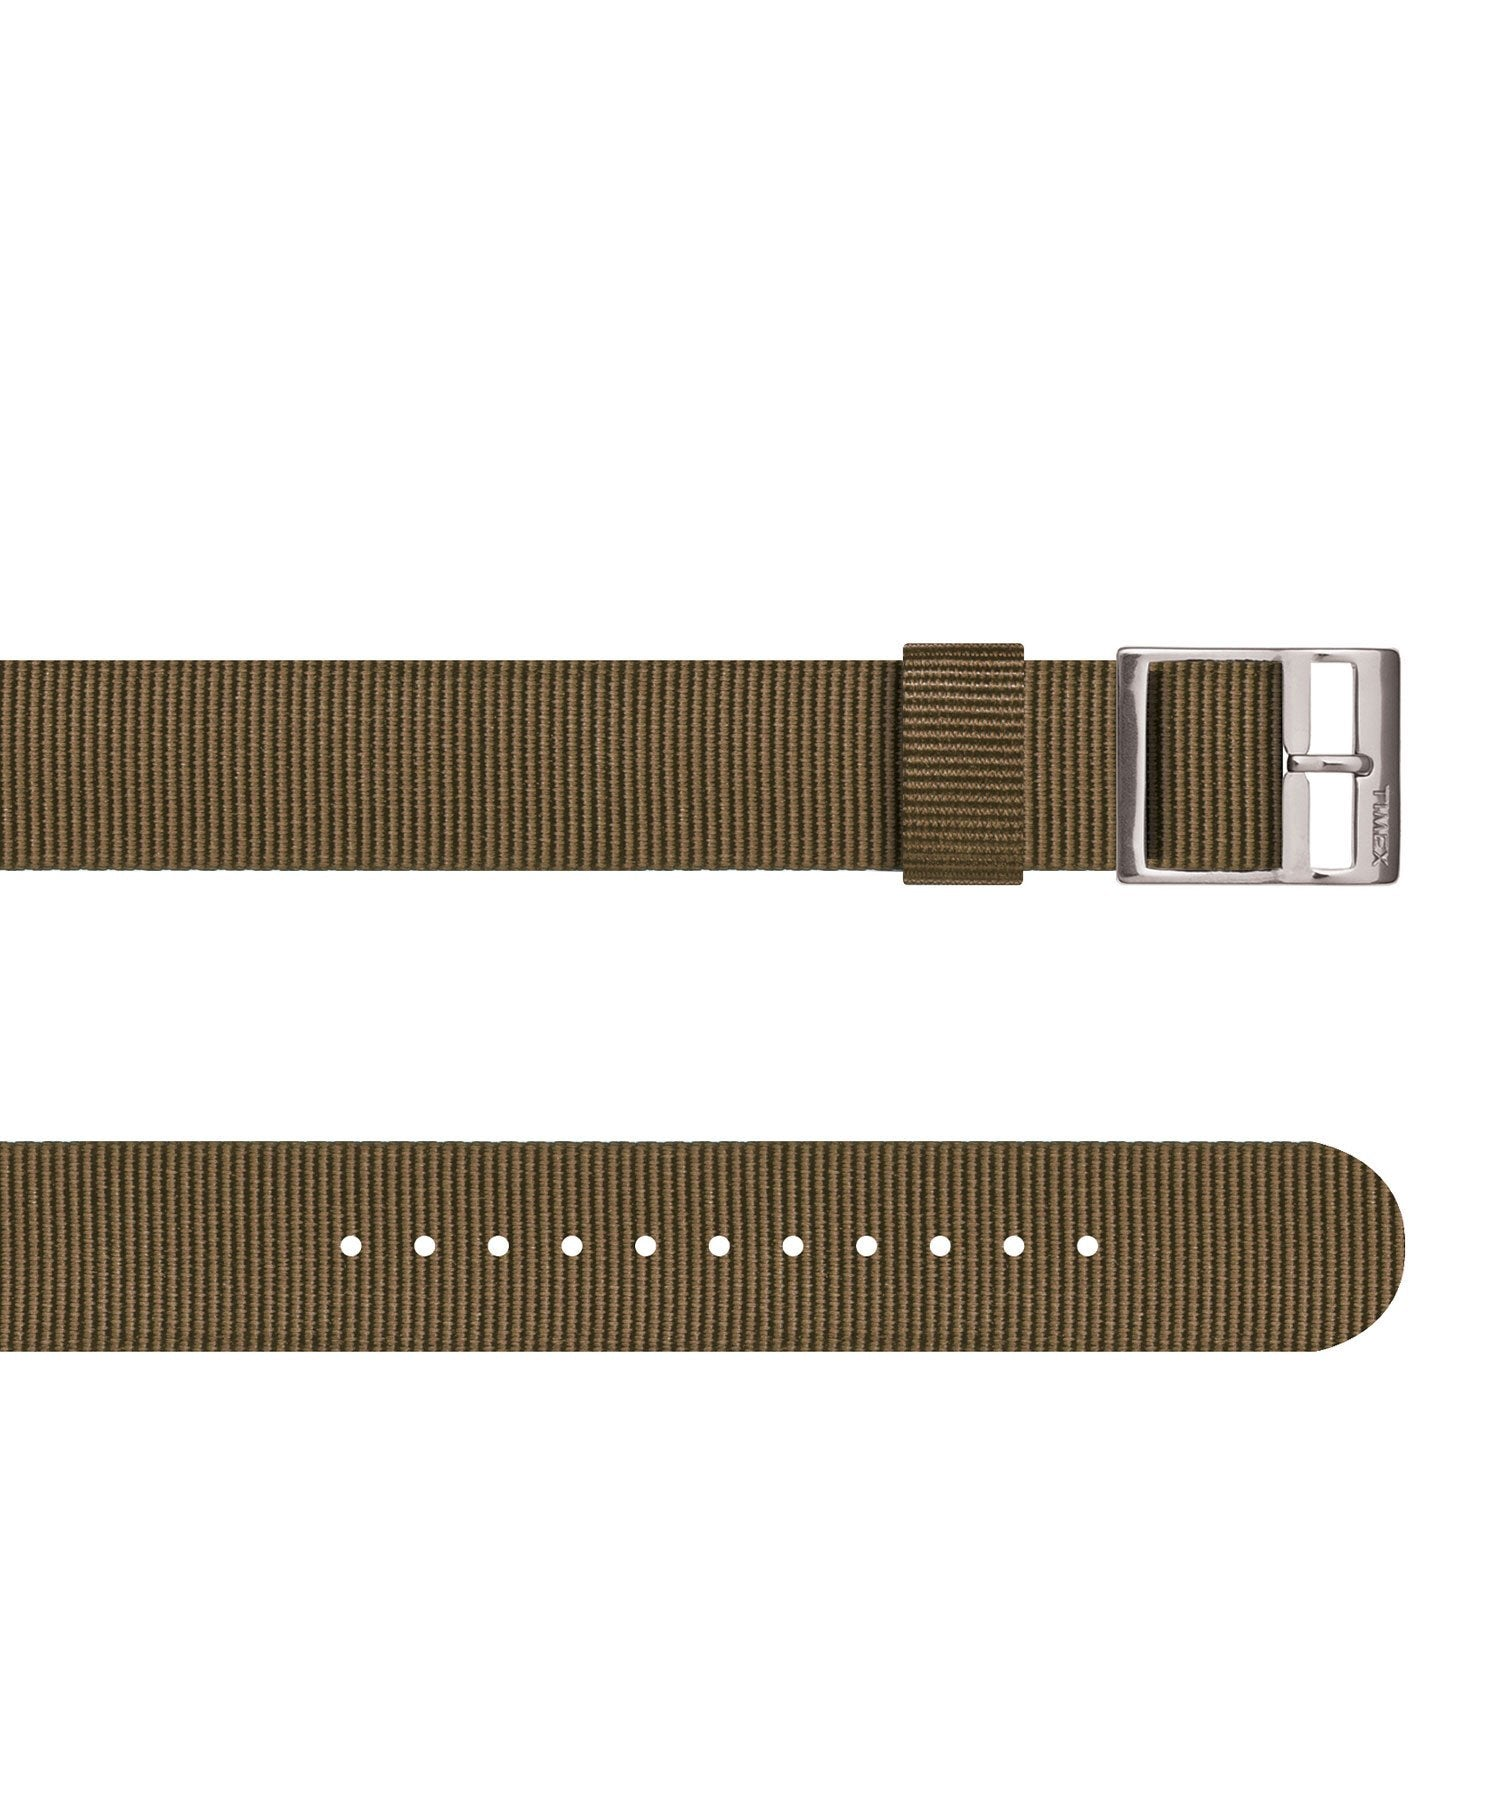 Timex Watch Strap in Olive Nylon